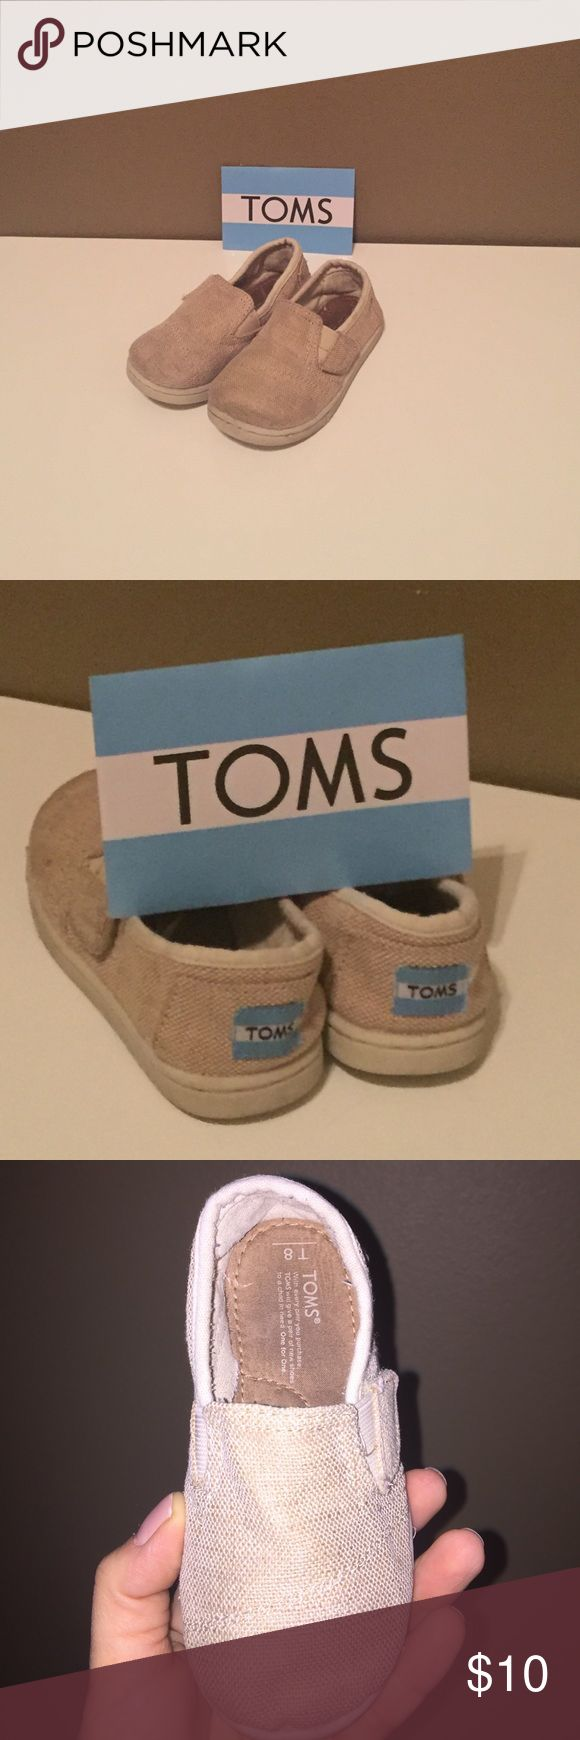 TOMS in burlap These burlap TOMS in Y8 go with anything! They are USED, but have room for lots more love and wear. TOMS Shoes